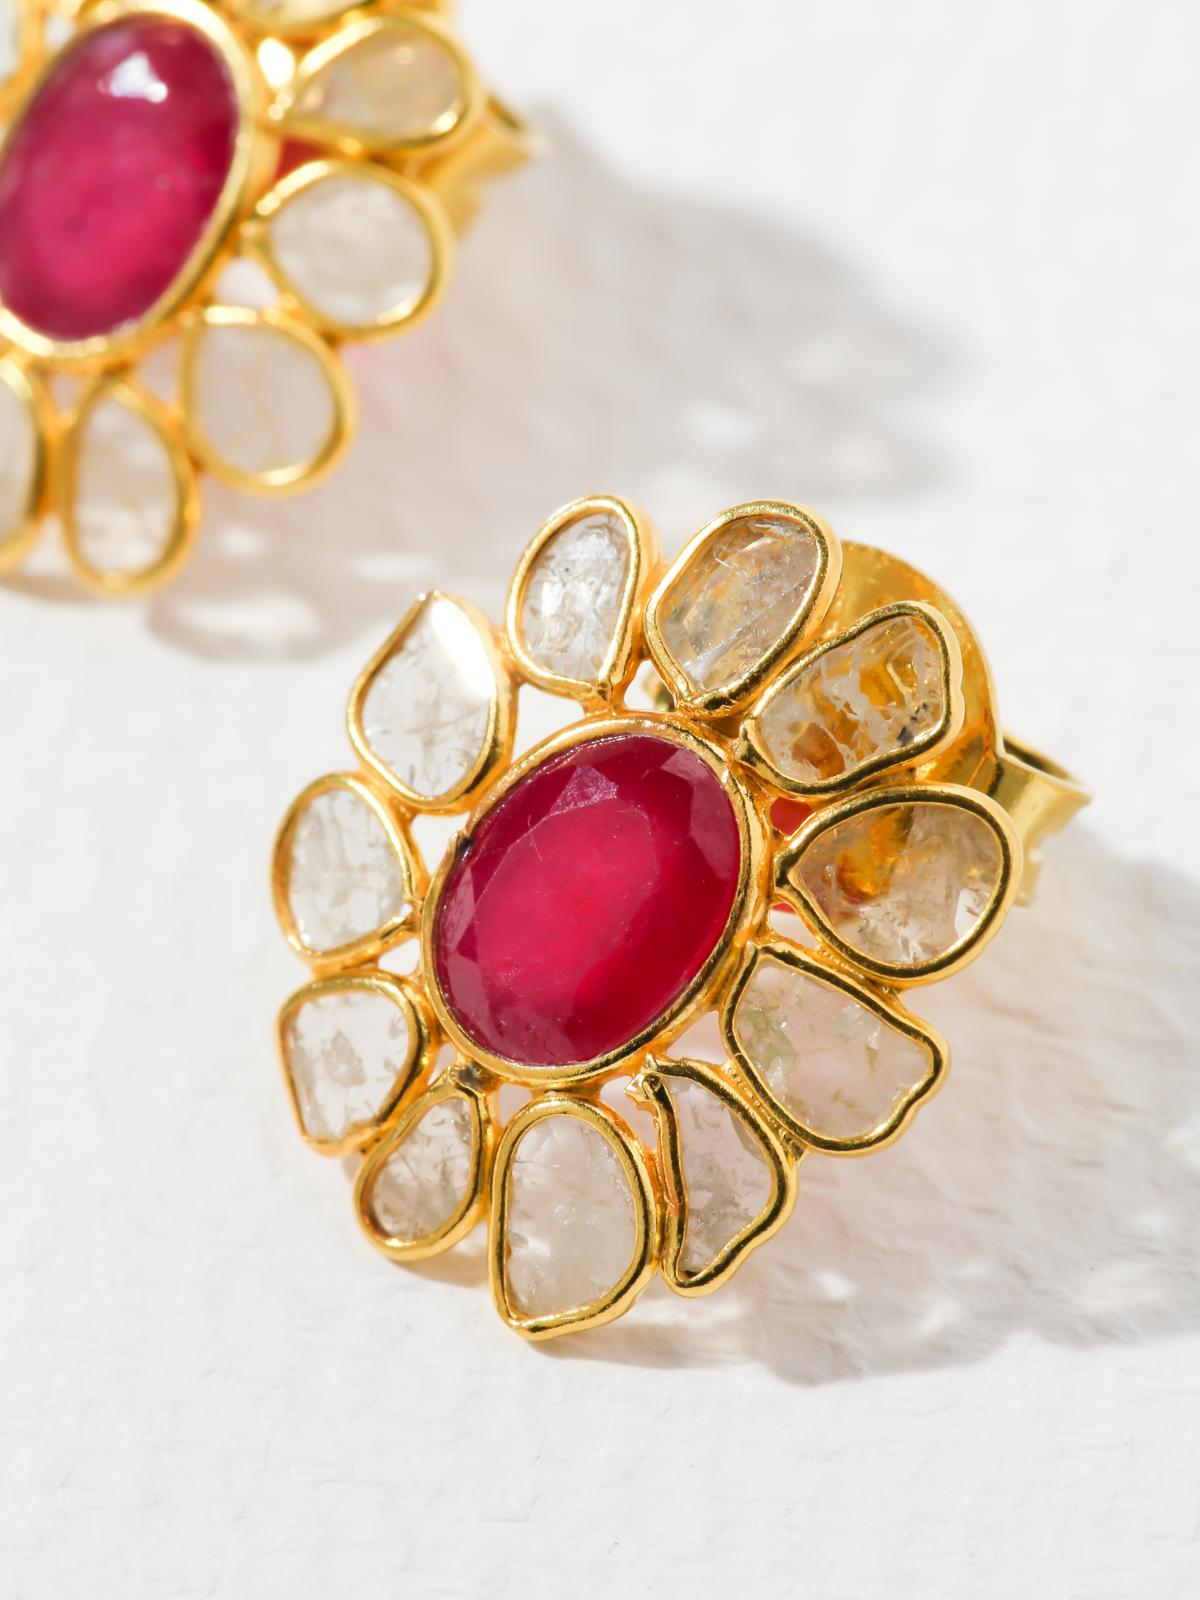 The Ruby Bloom Earrings